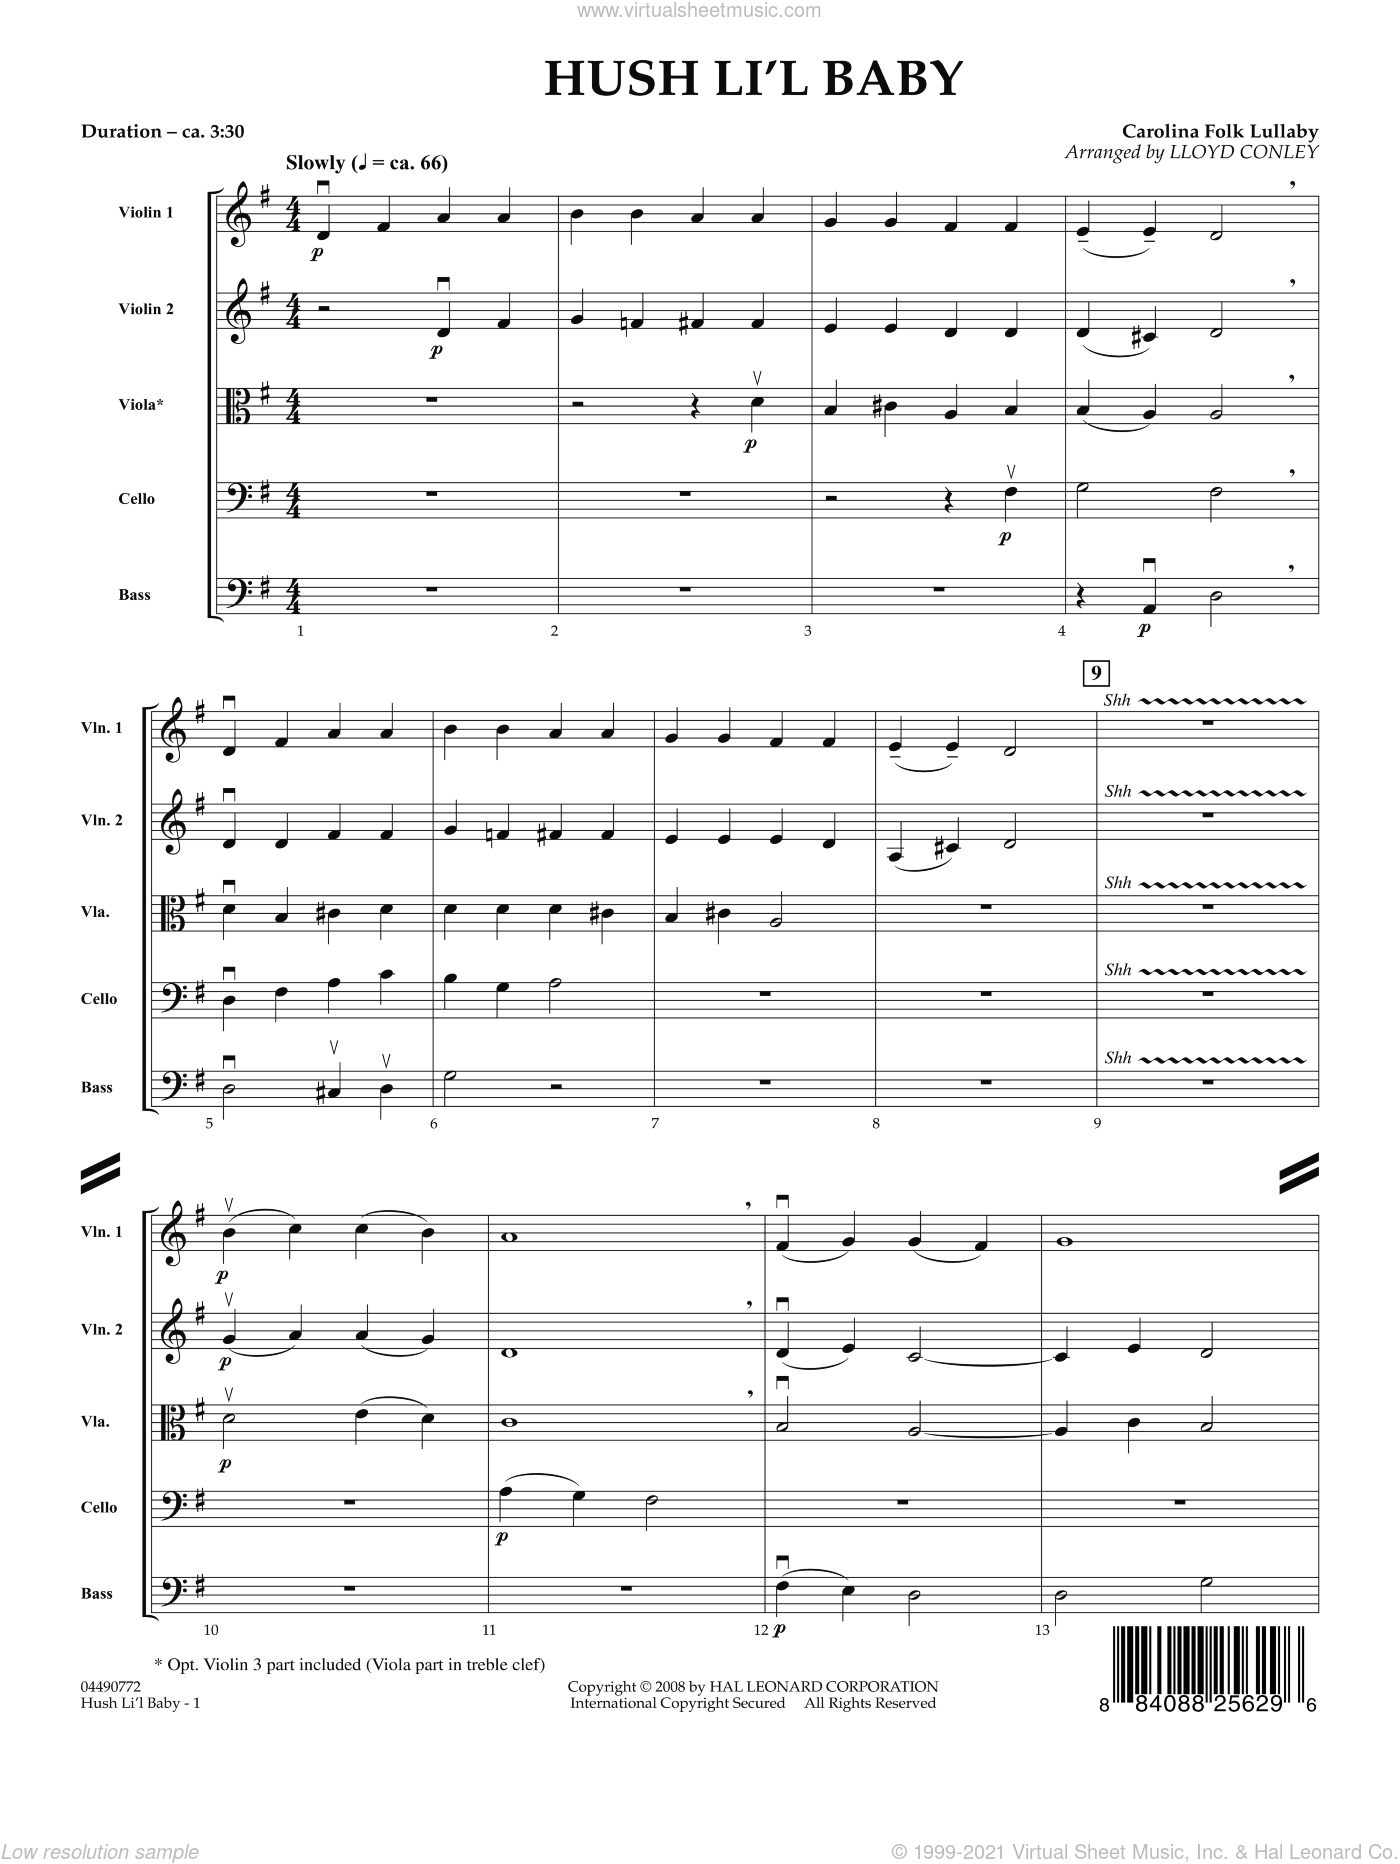 Hush Li'l Baby sheet music for orchestra (full score) by Lloyd Conley